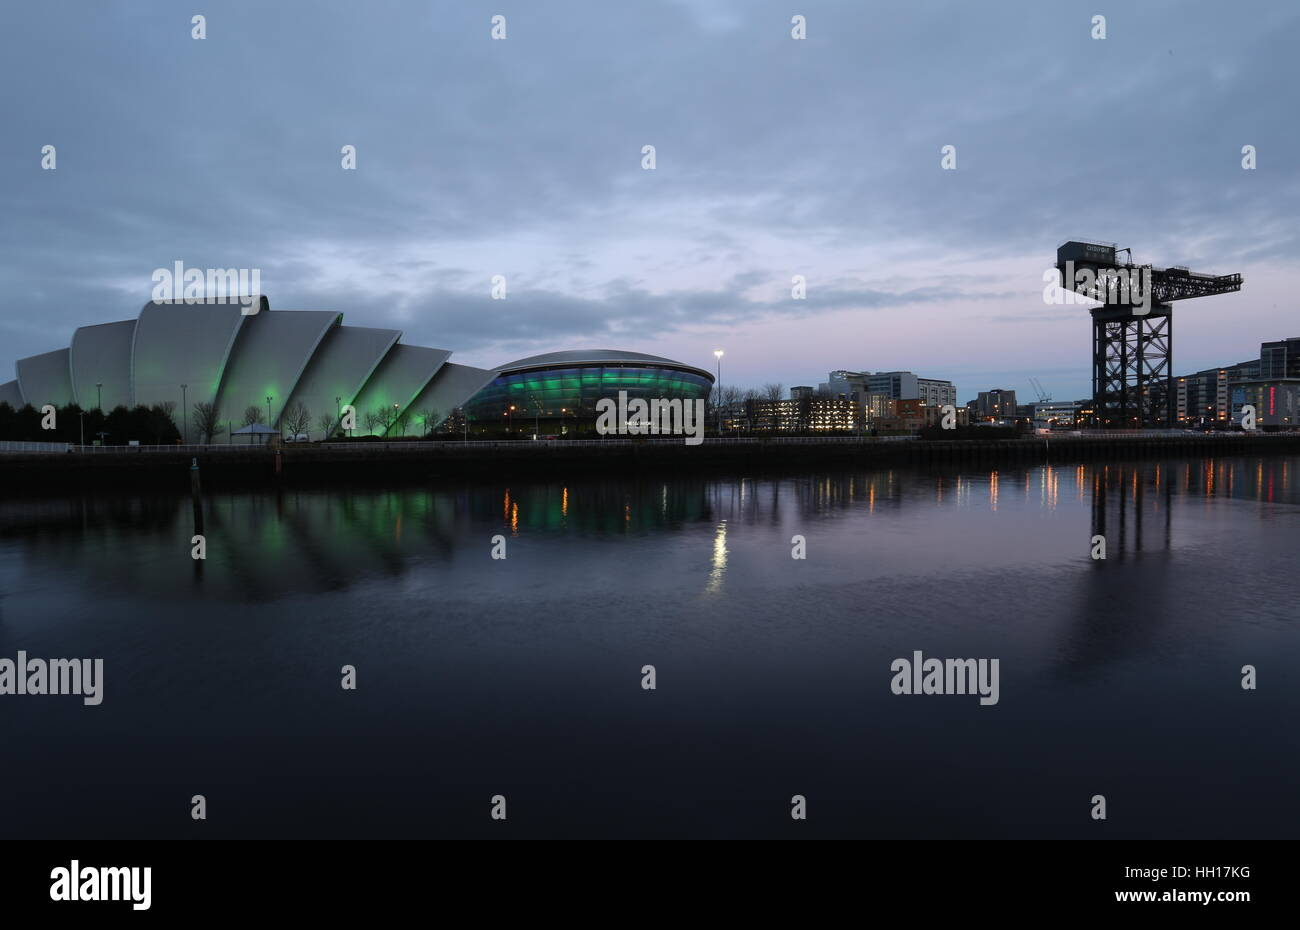 Clyde Auditorium and SSE Hydro and Finnieston Crane reflected in River Clyde at dusk Glasgow Scotland  January 2017 - Stock Image